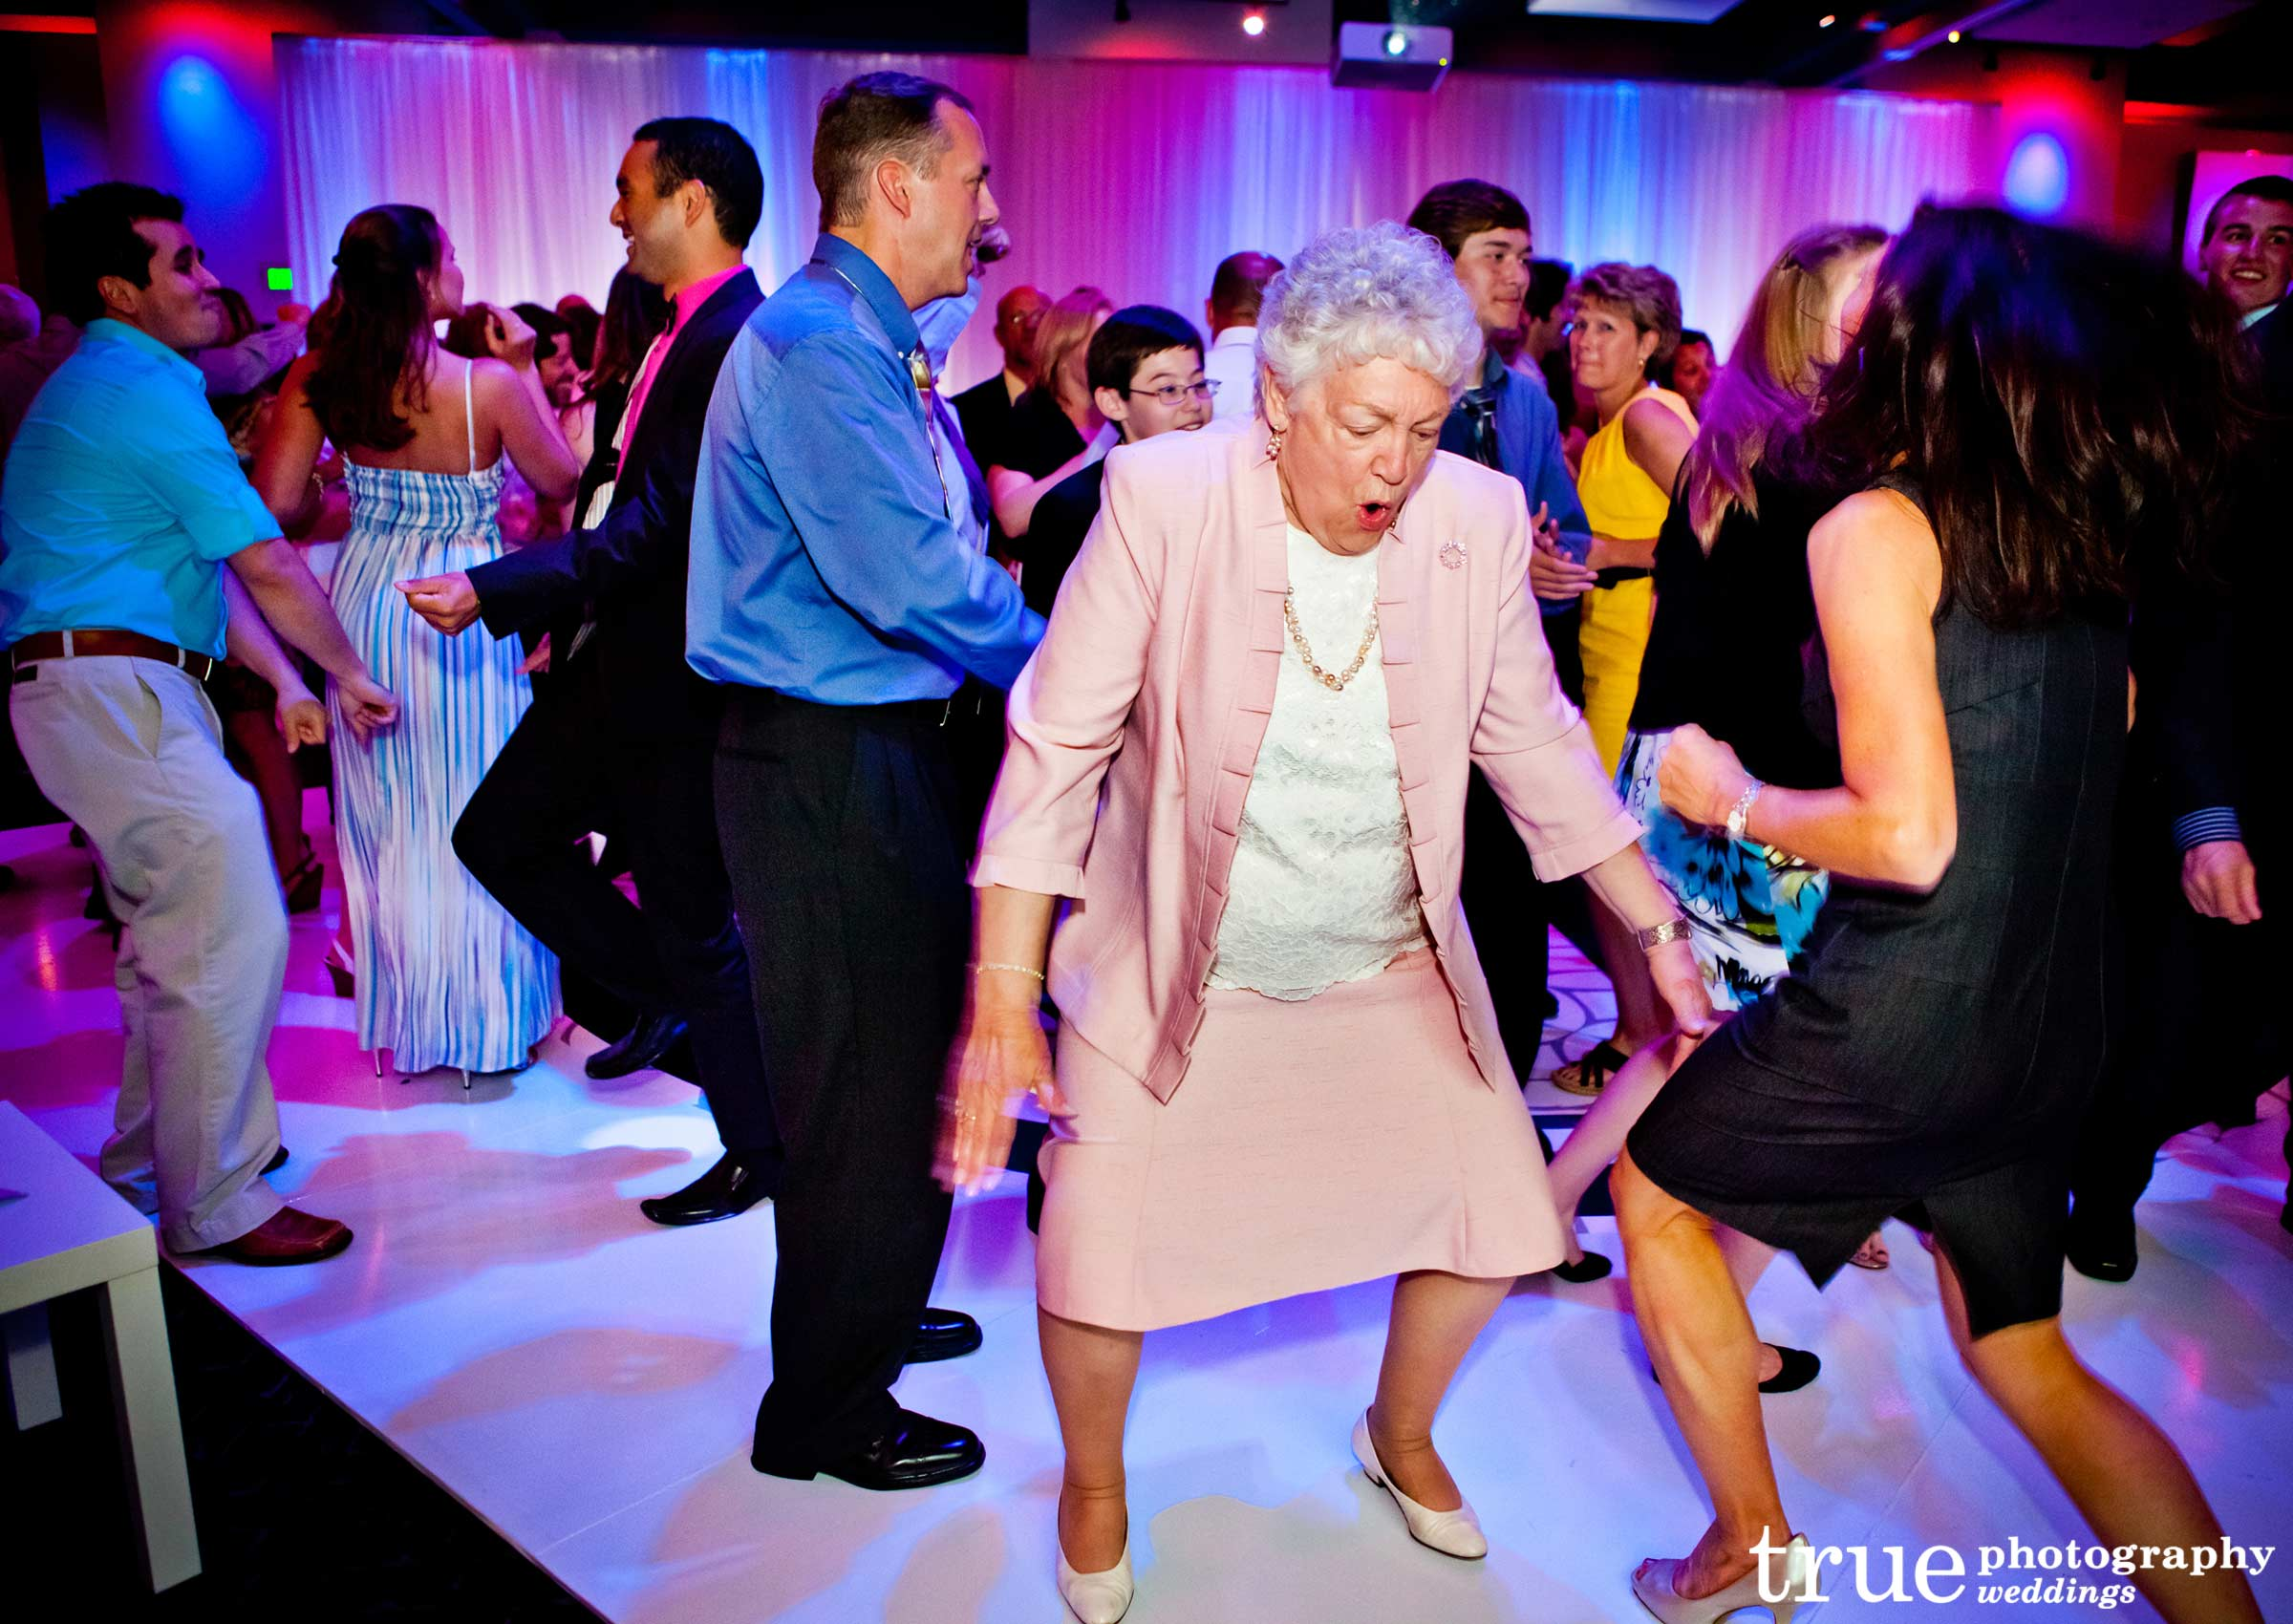 Dancing-at-wedding-reception-with-Tim-Altbaum-Productions1.jpg